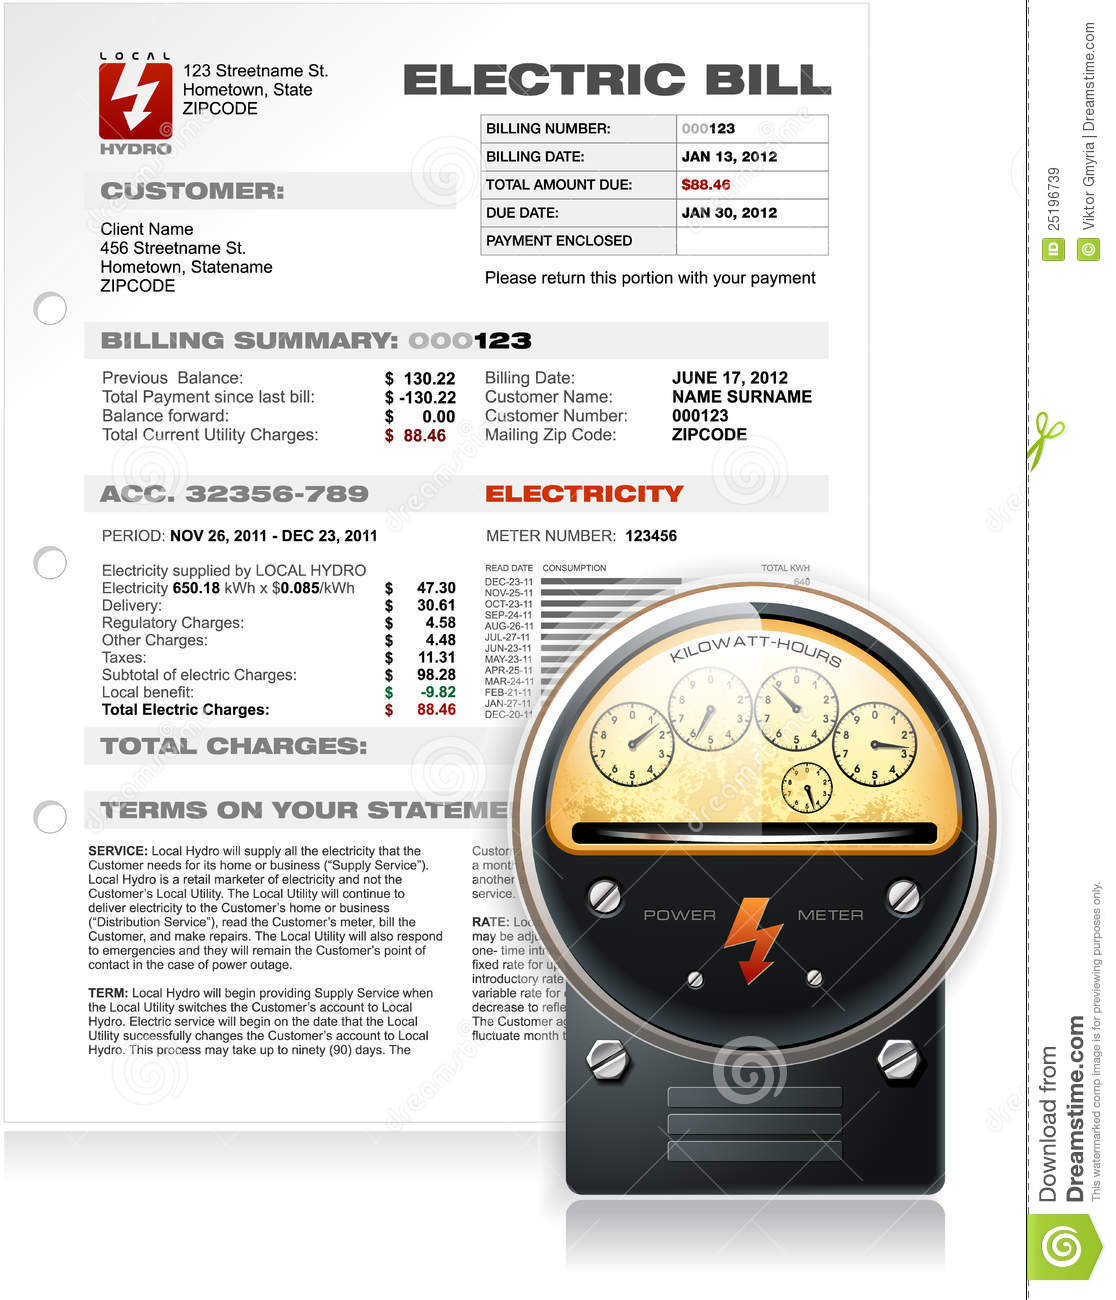 Electric Bill With Electric Counter Vector Stock Vector